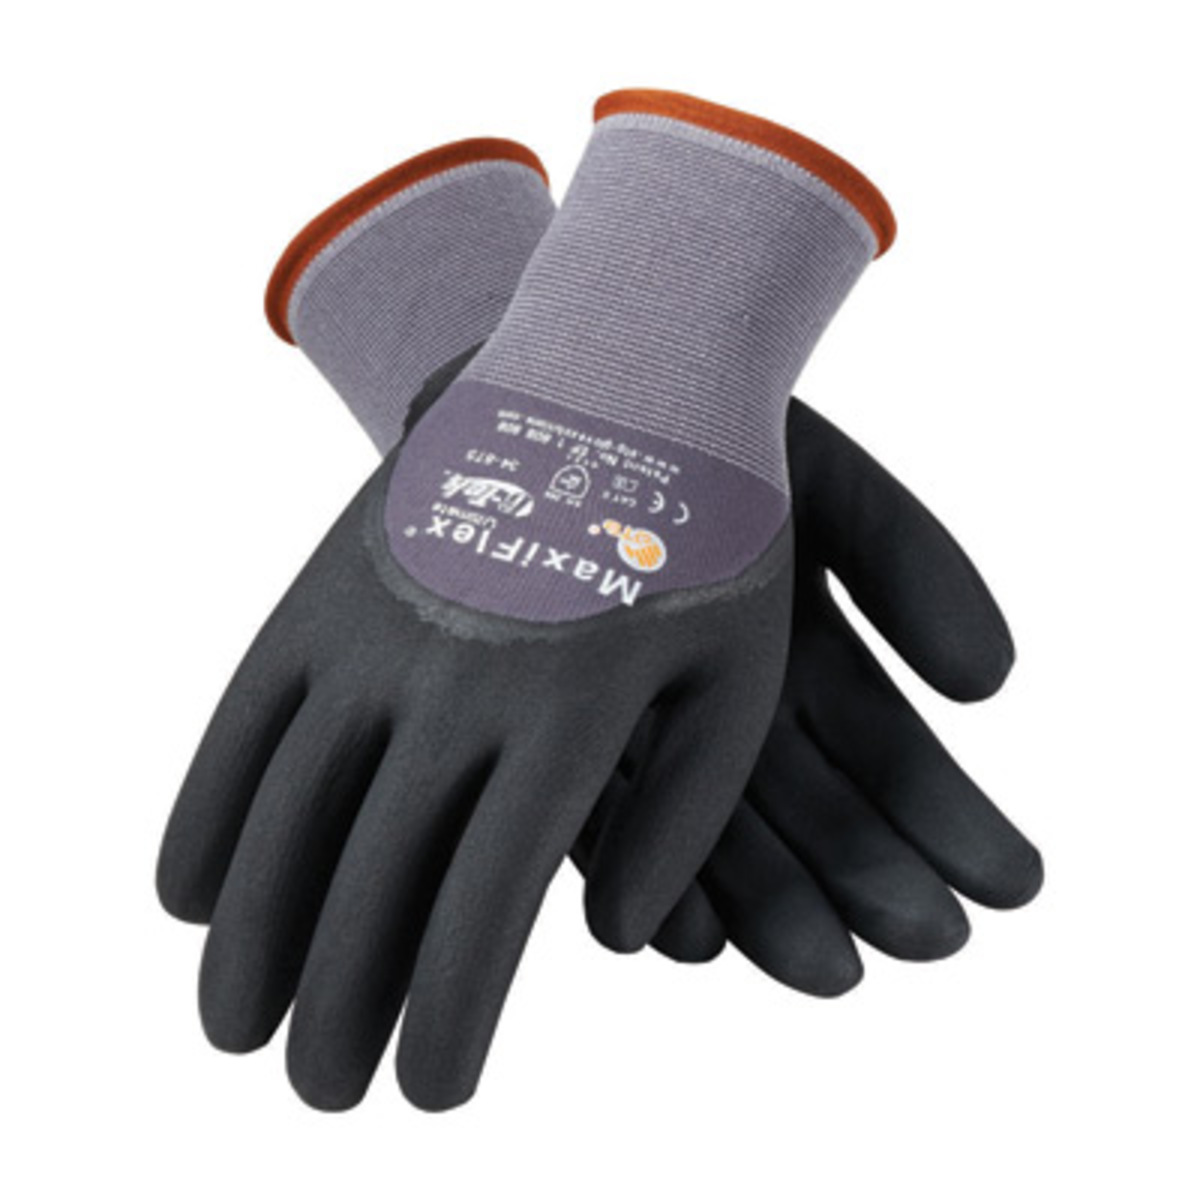 Black nitrile gloves xs - Protective Industrial Products X Small Maxiflex Ultimate By Atg 15 Gauge Abrasion